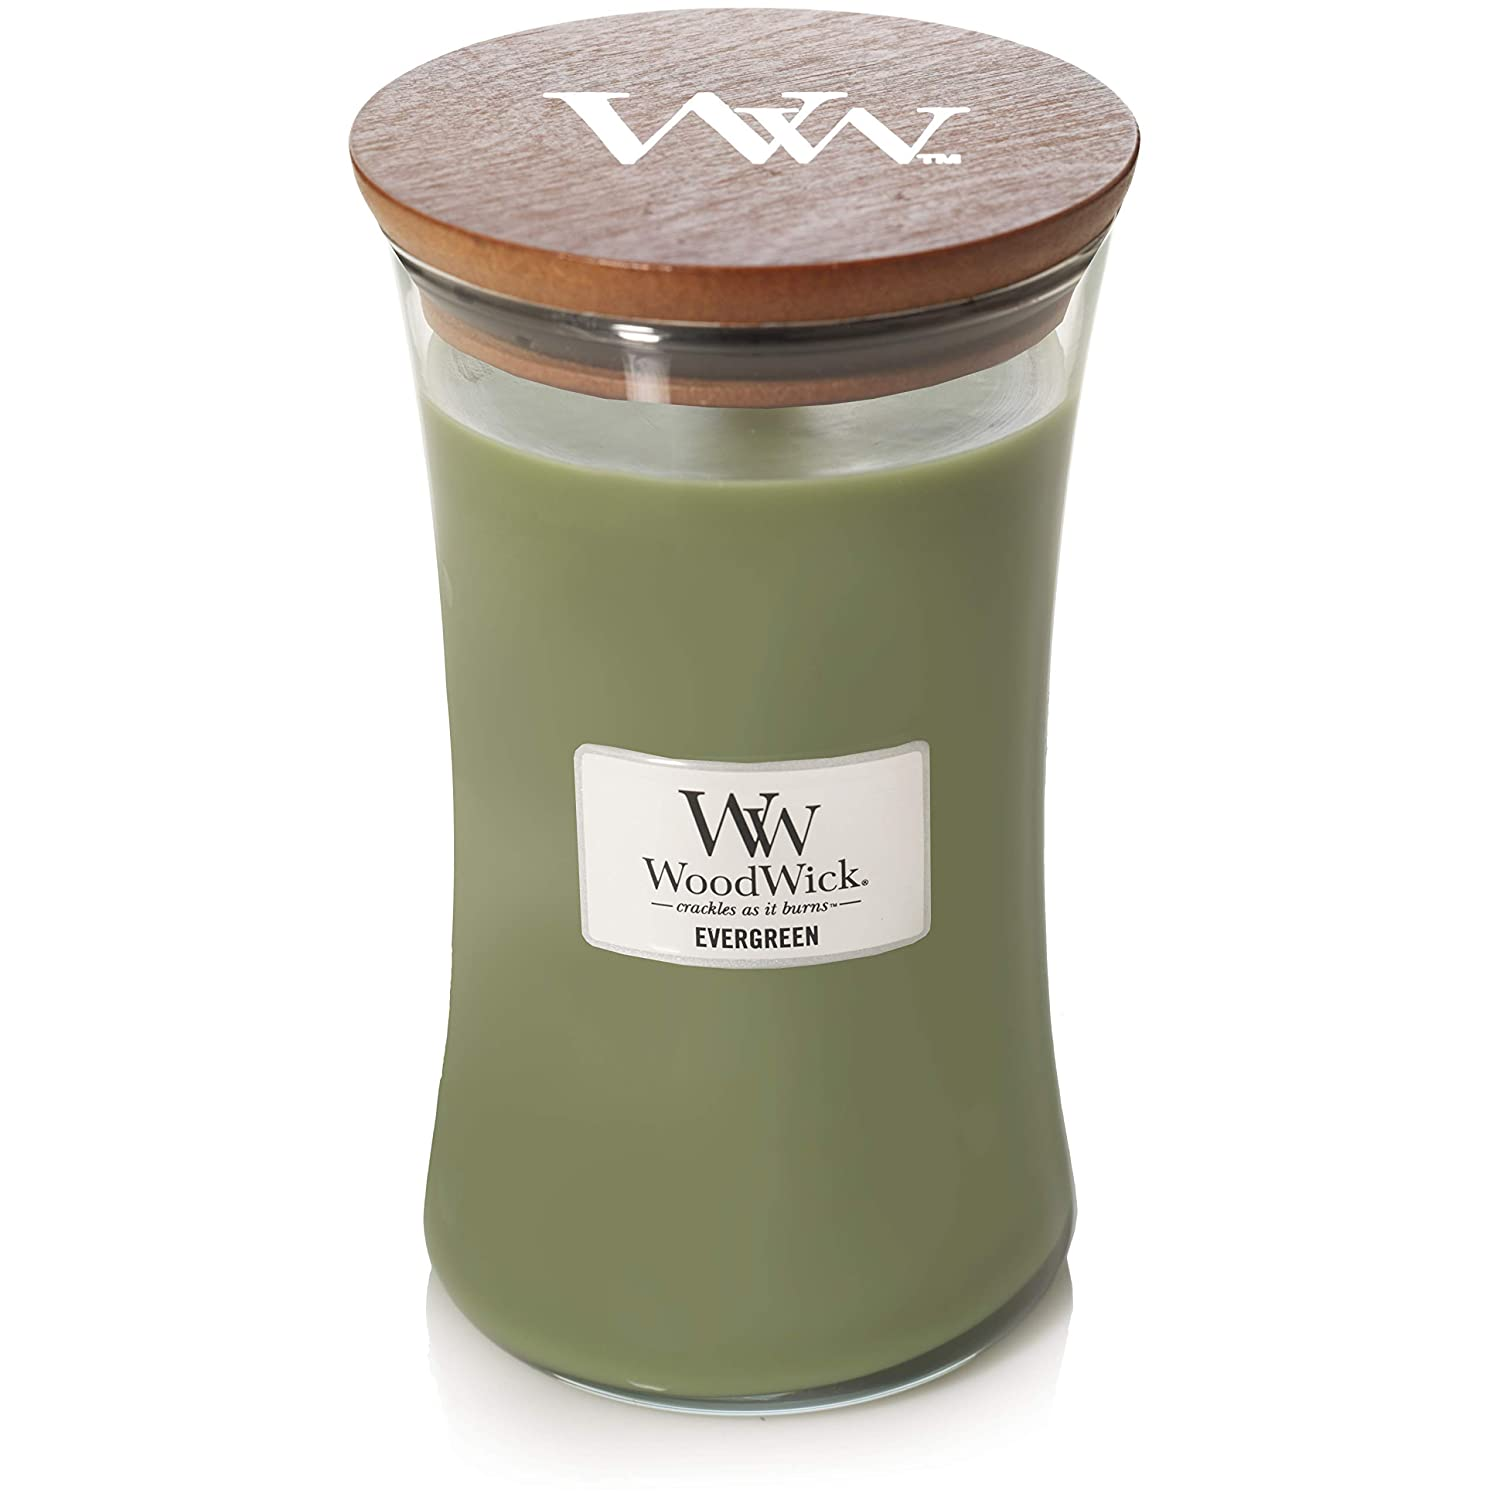 Yankee Candle Evergreen B00ATNO9QY